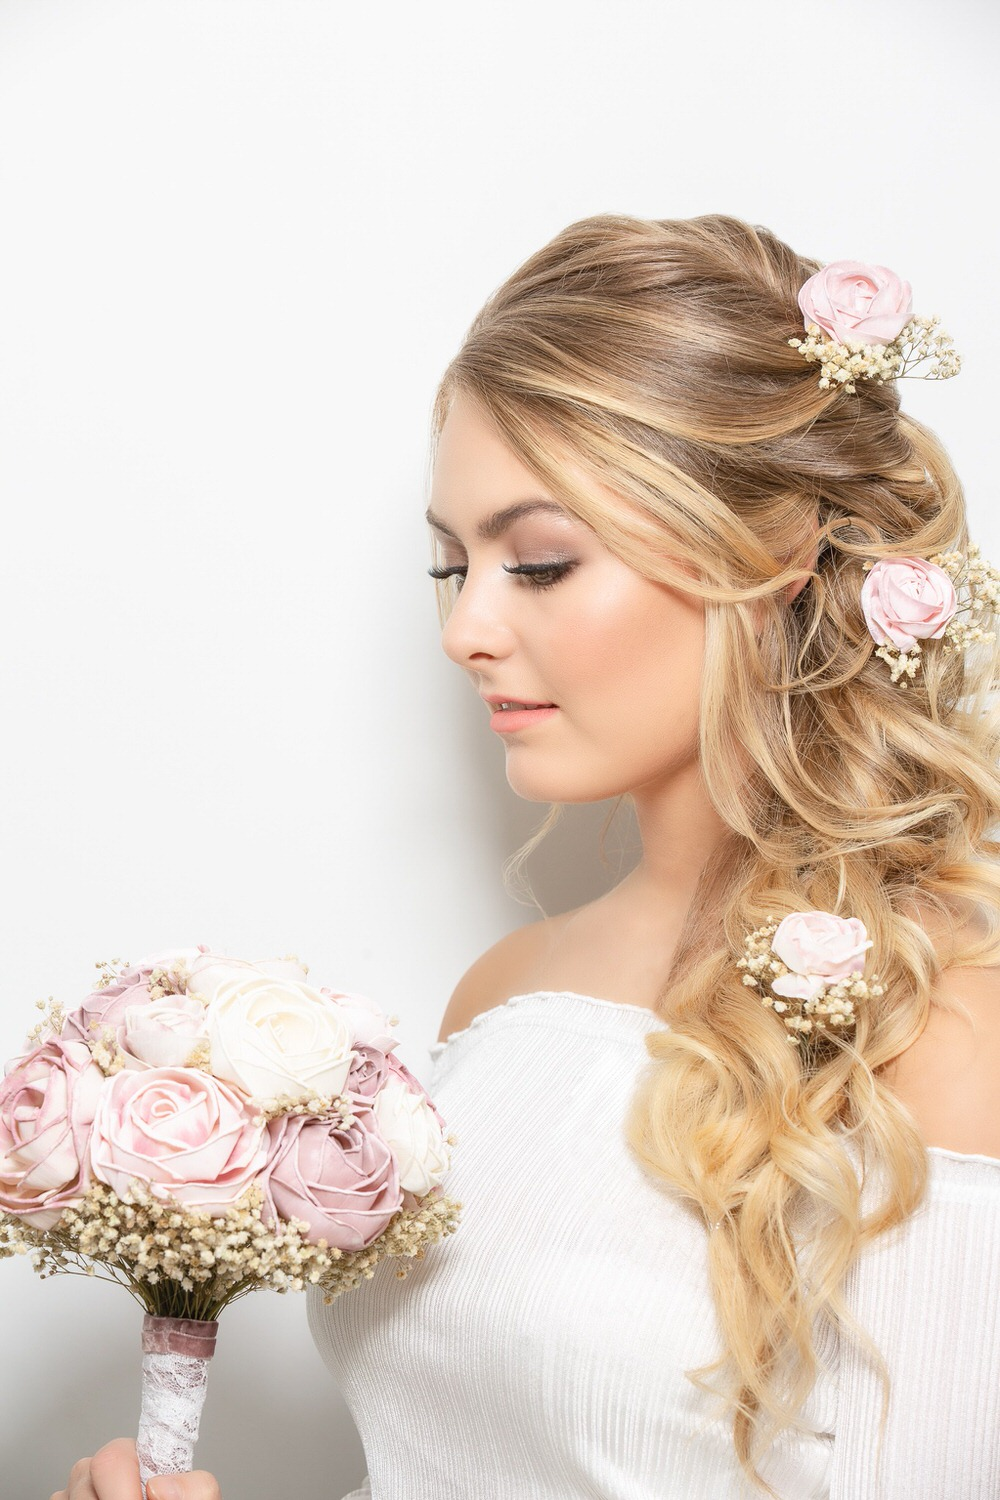 Blonde haired bride looking at her wedding bouquet